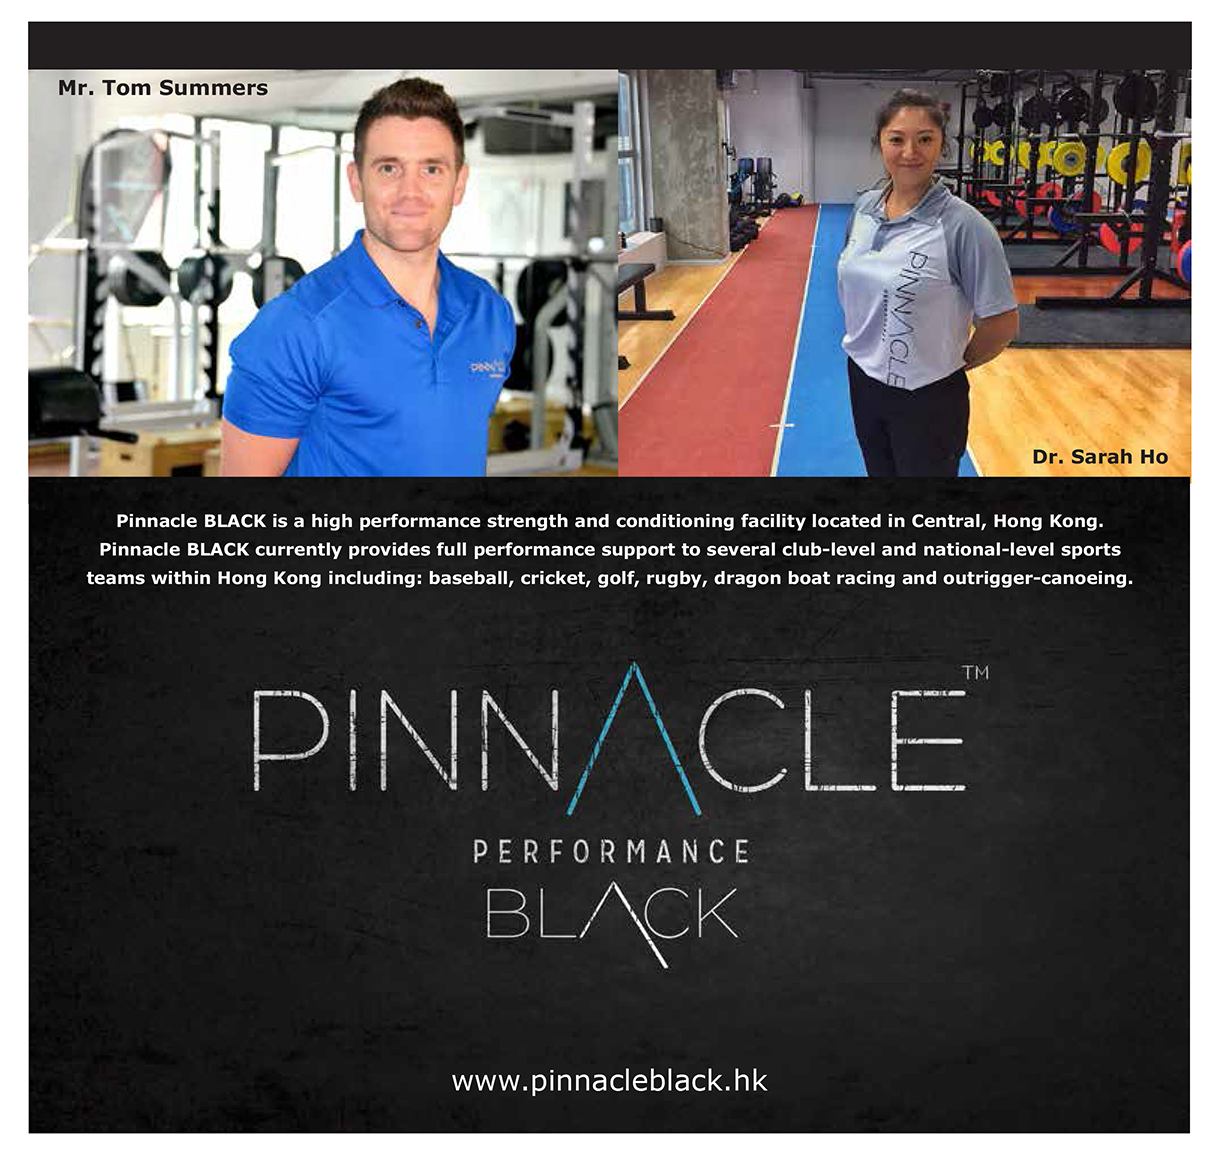 Pinnacle Black SportsLife HKG Seminar Speakers 2